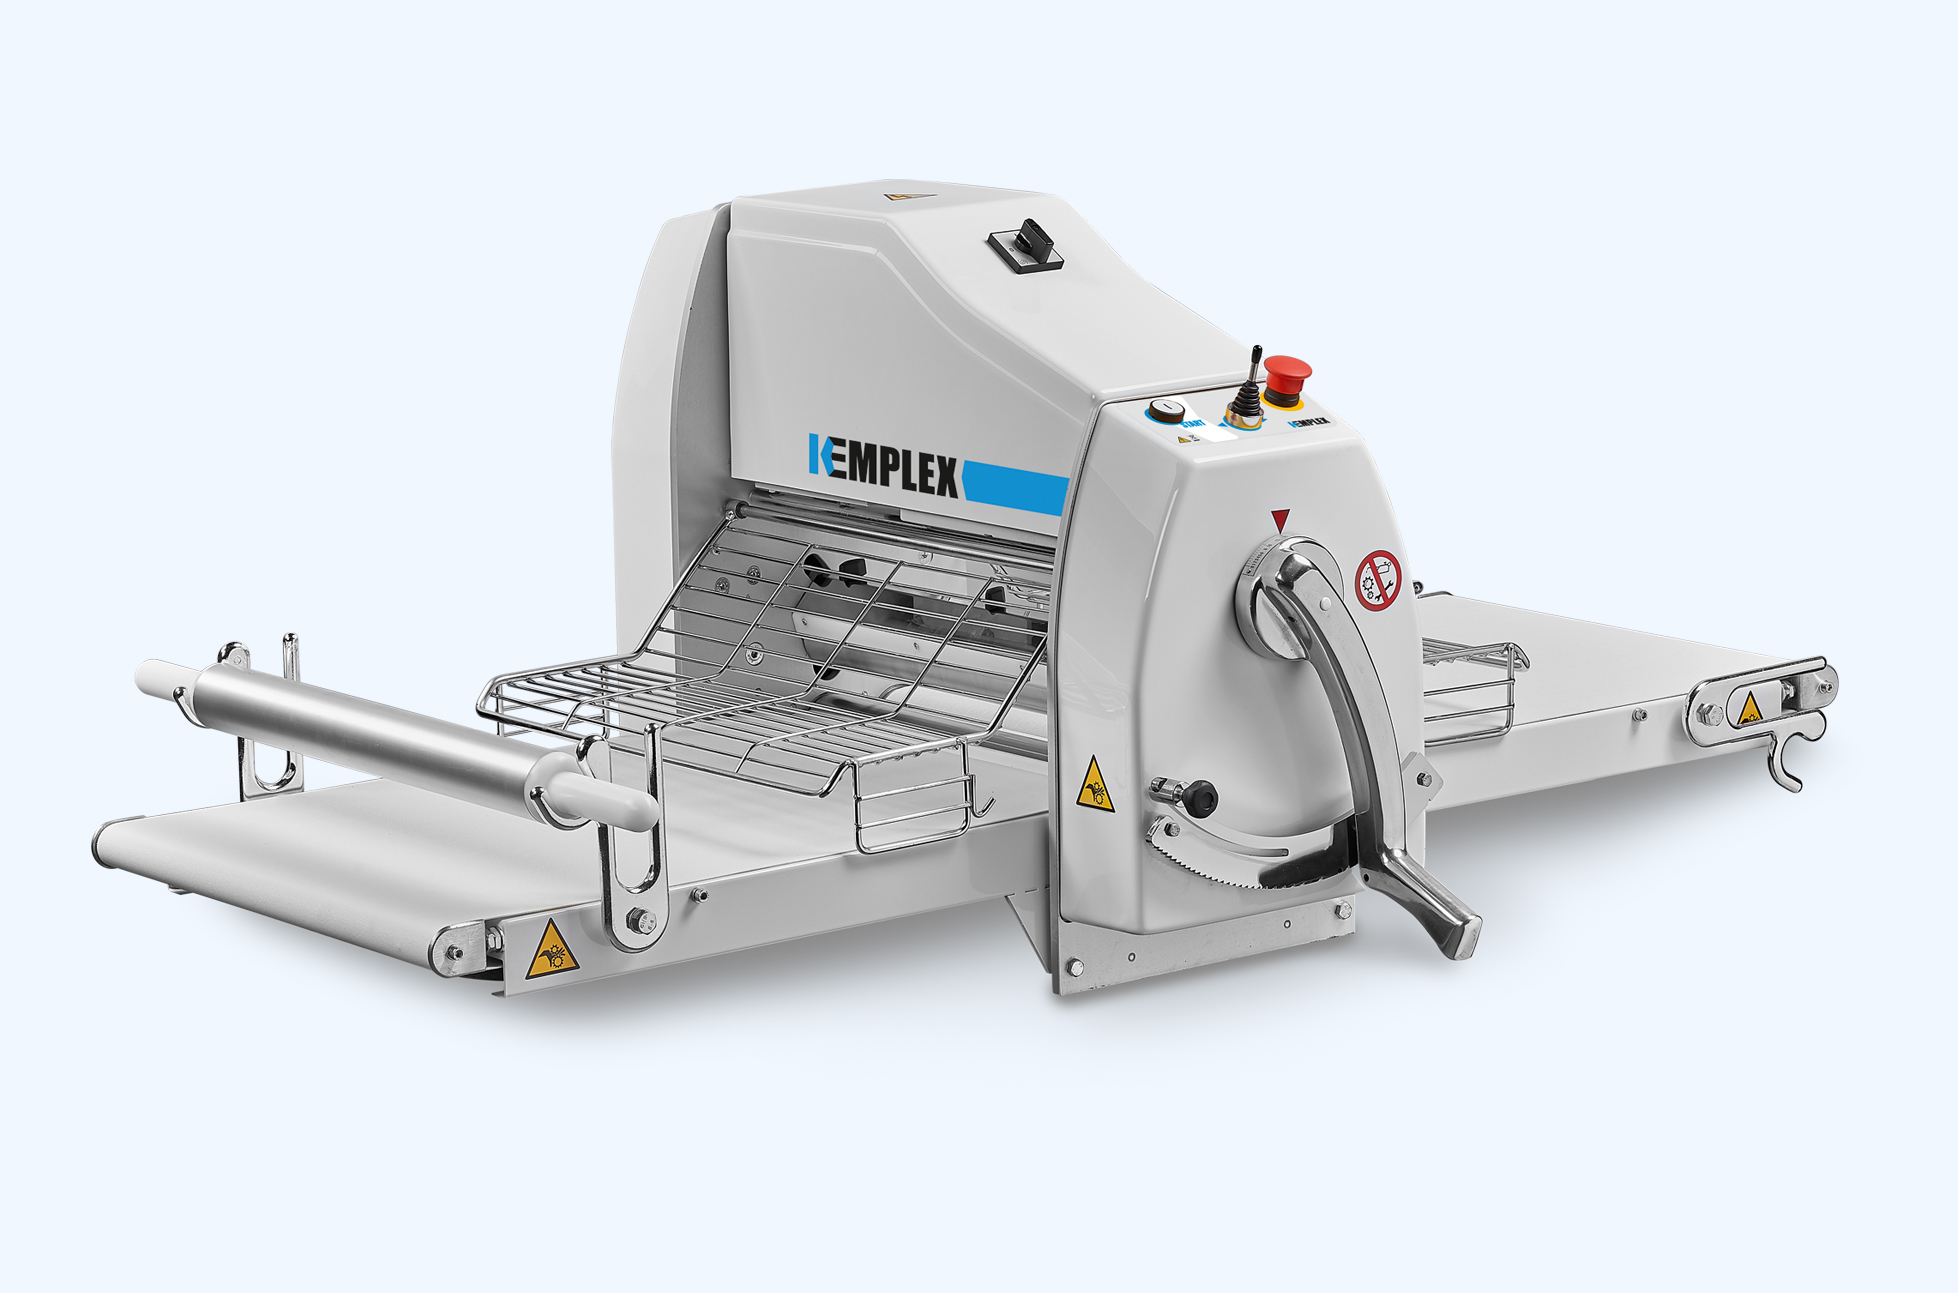 SF Line Kemplex Professional dough sheeters